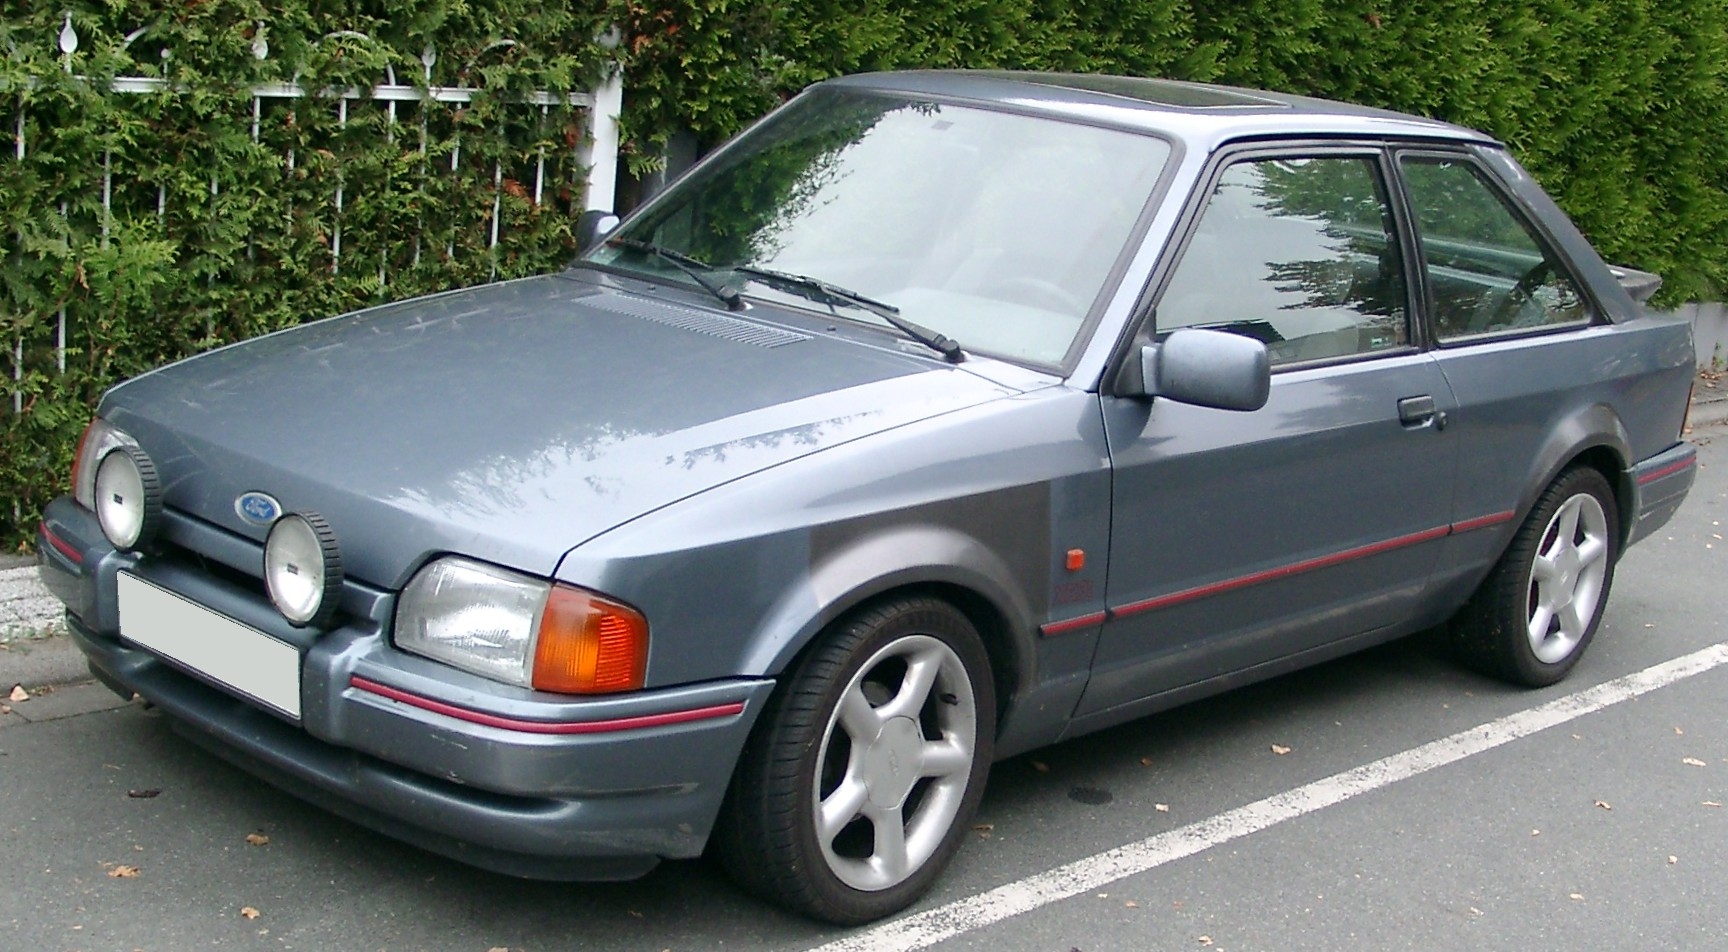 file ford escort xr3i front